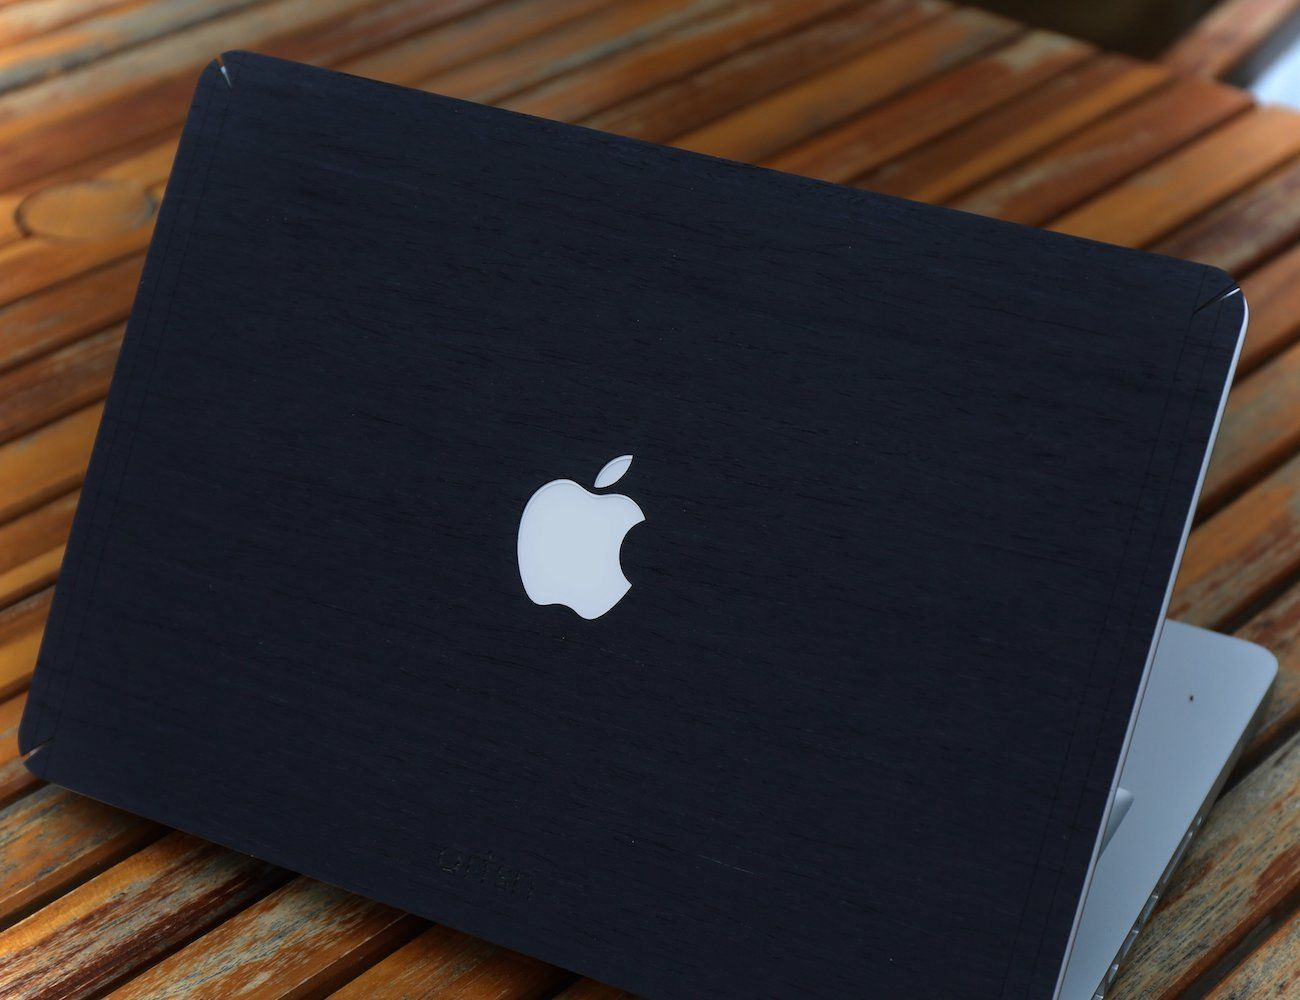 Black+Ash+Wood+MacBook+Skin